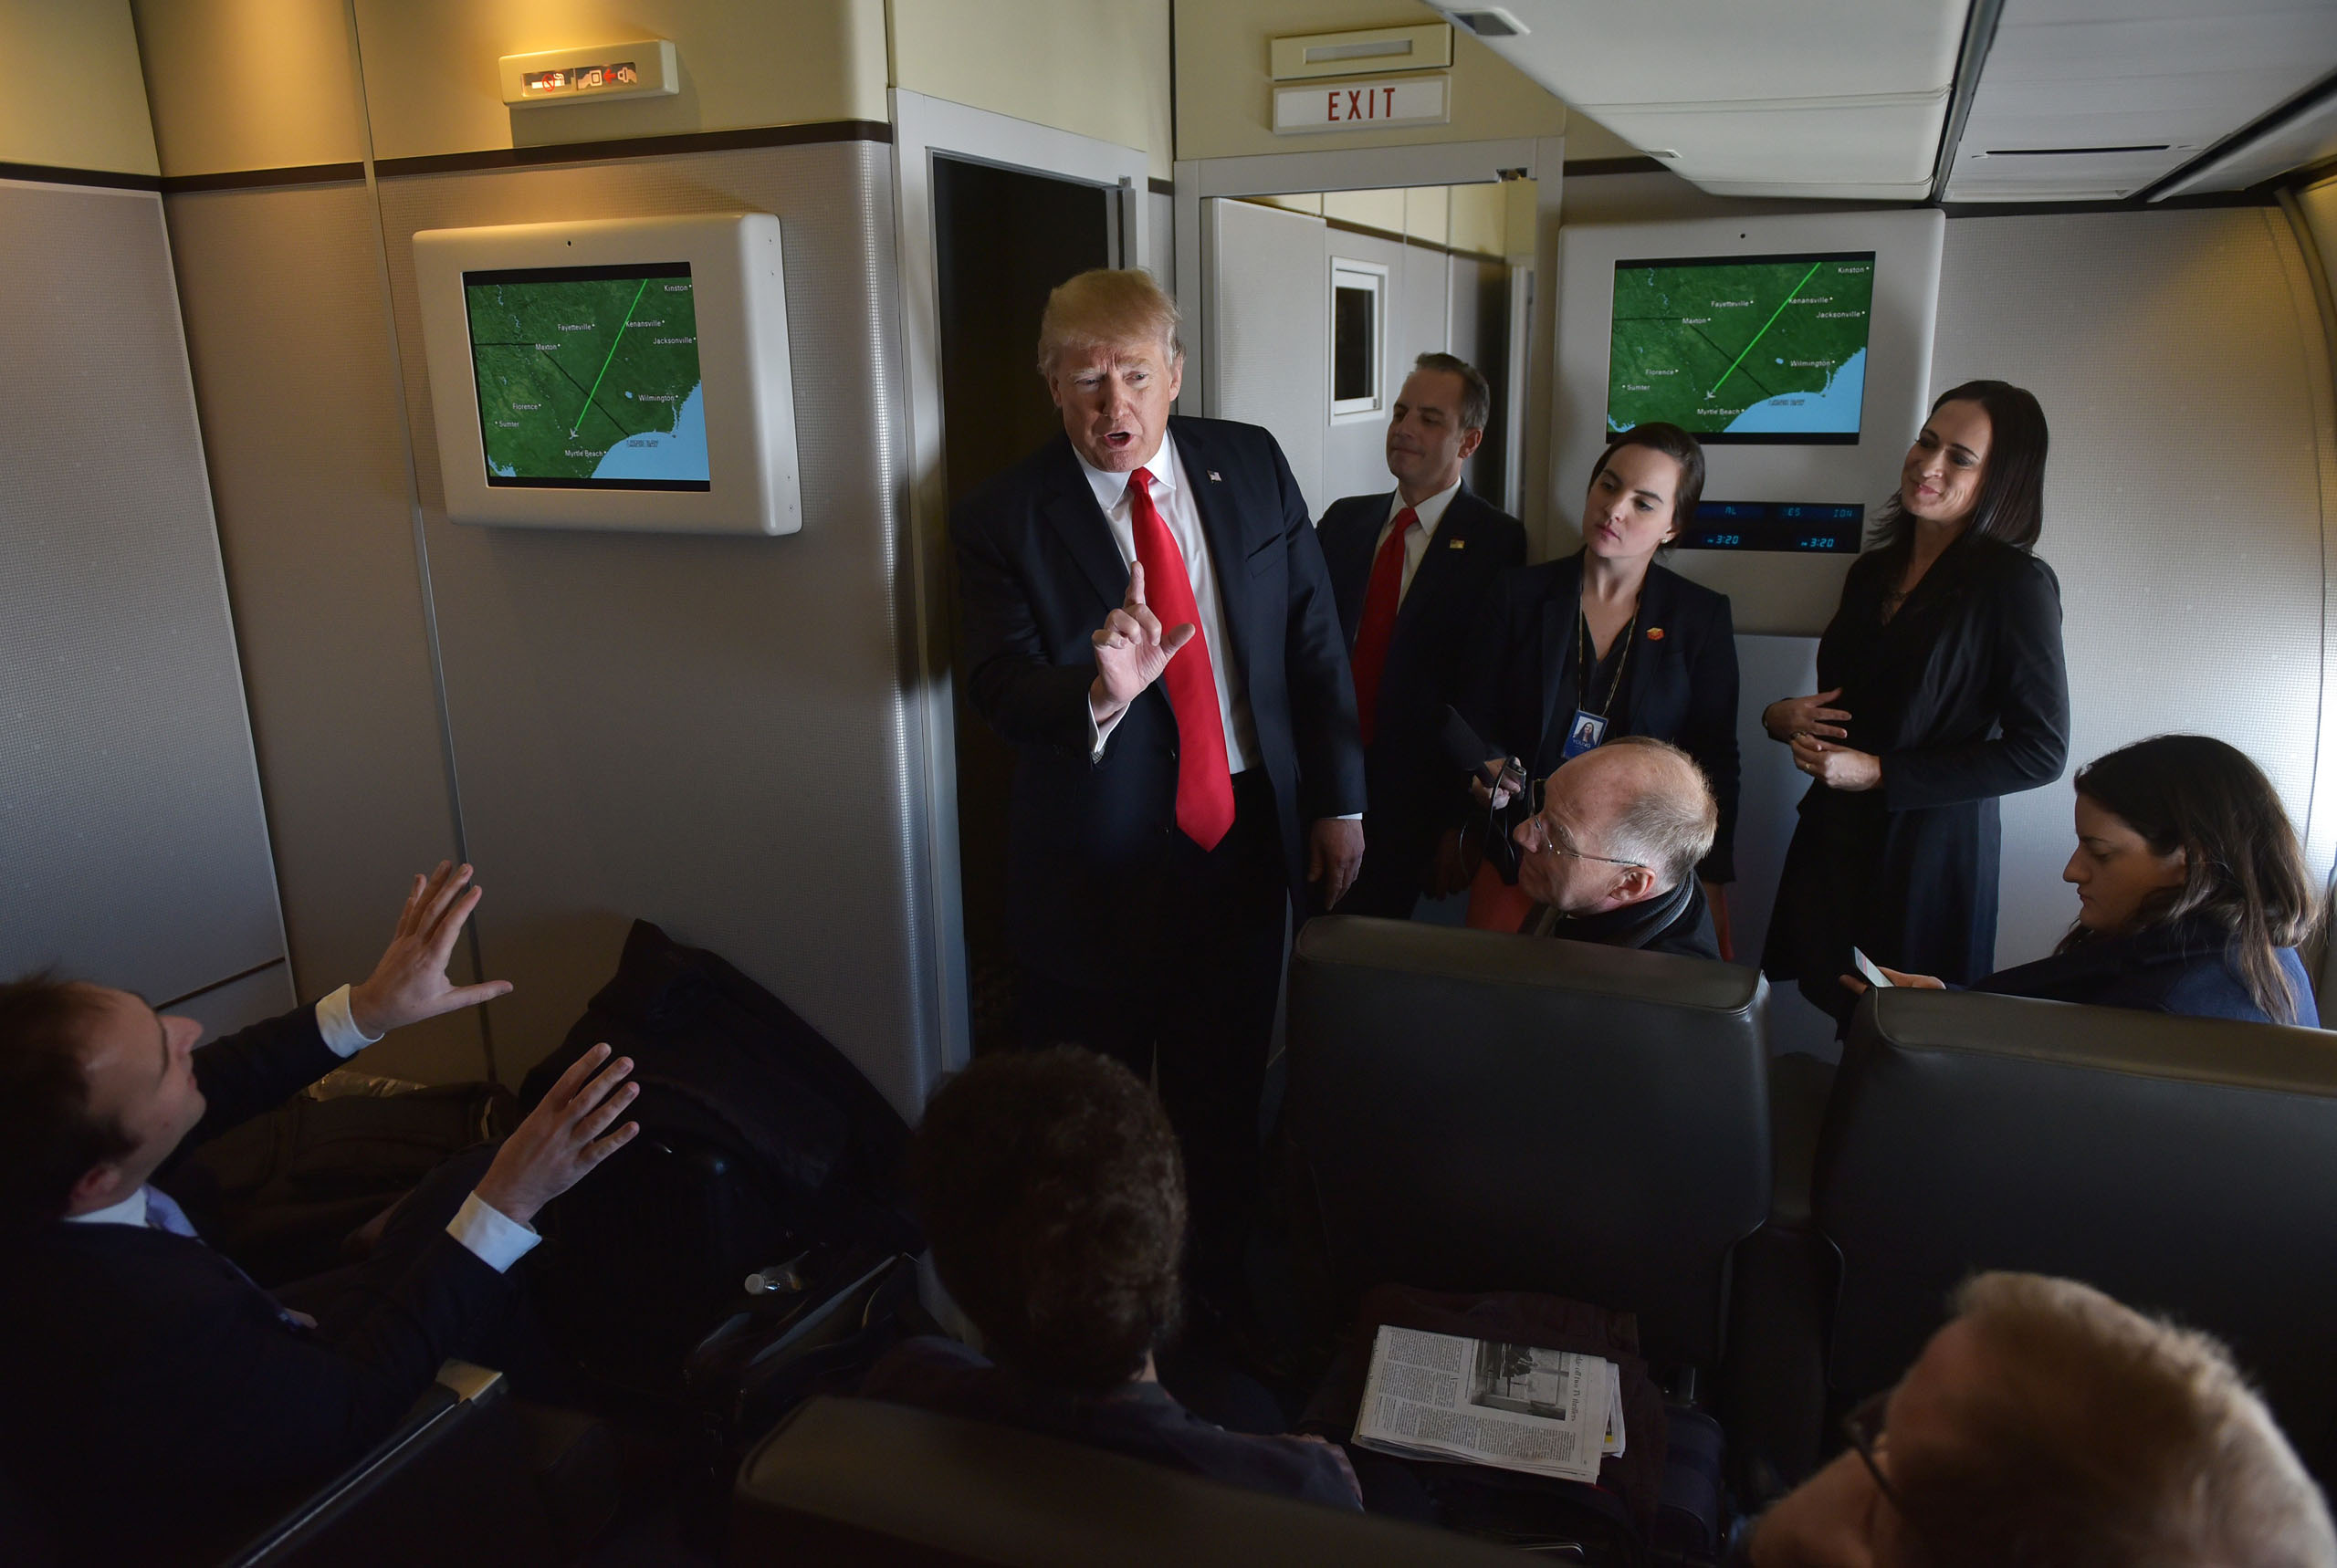 President Donald Trump chats with reporters on board Air Force One before departing from Andrews Air Force Base in Maryland, bound for Palm Beach, Florida on Feb. 3, 2017.